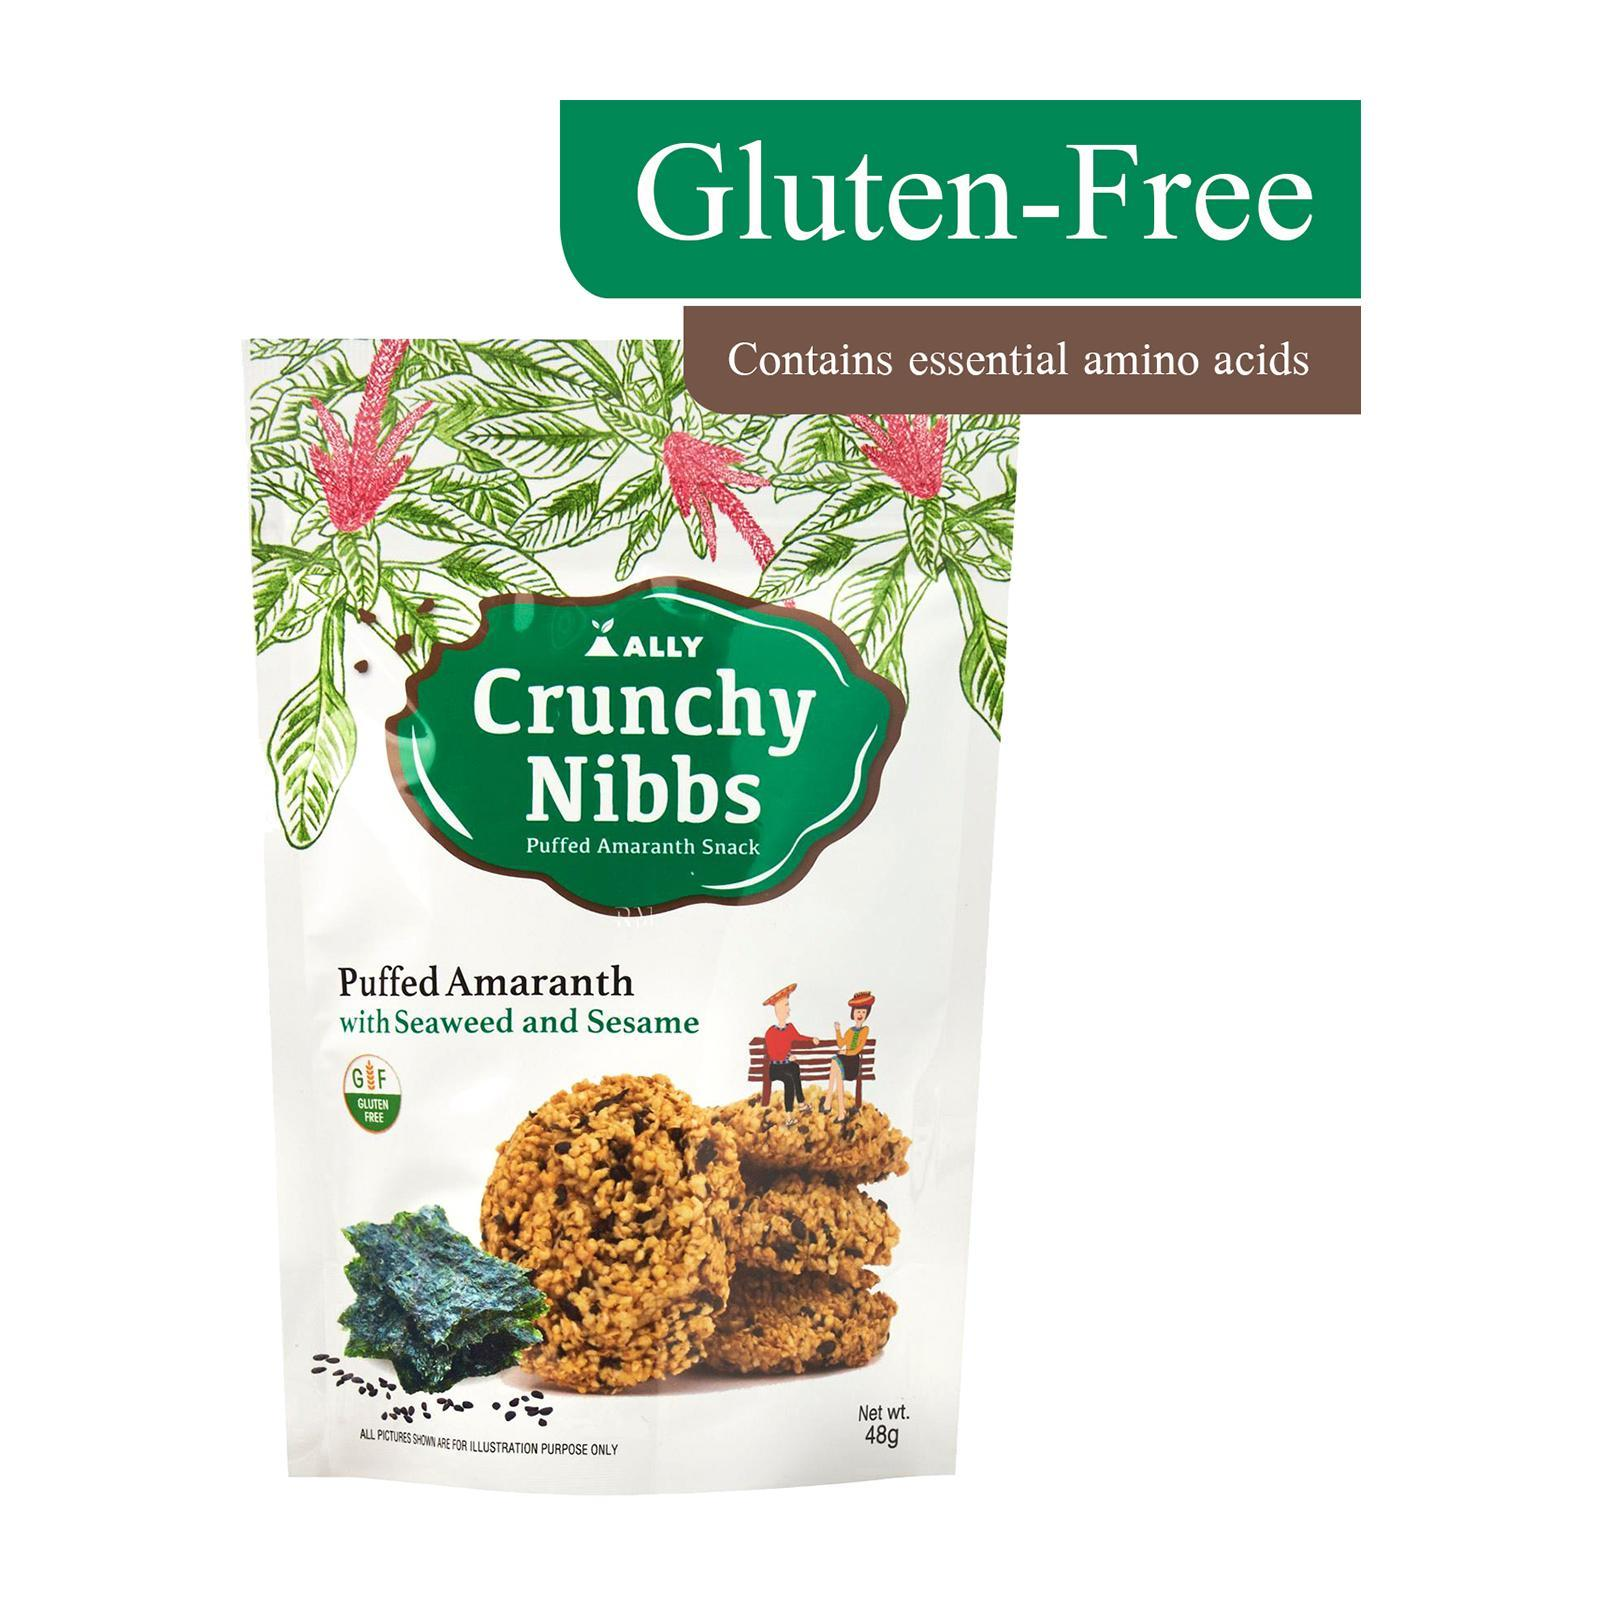 Crunchy Nibbs Puffed Amaranth Snack Seaweed And Sesame - by Optimo Foods